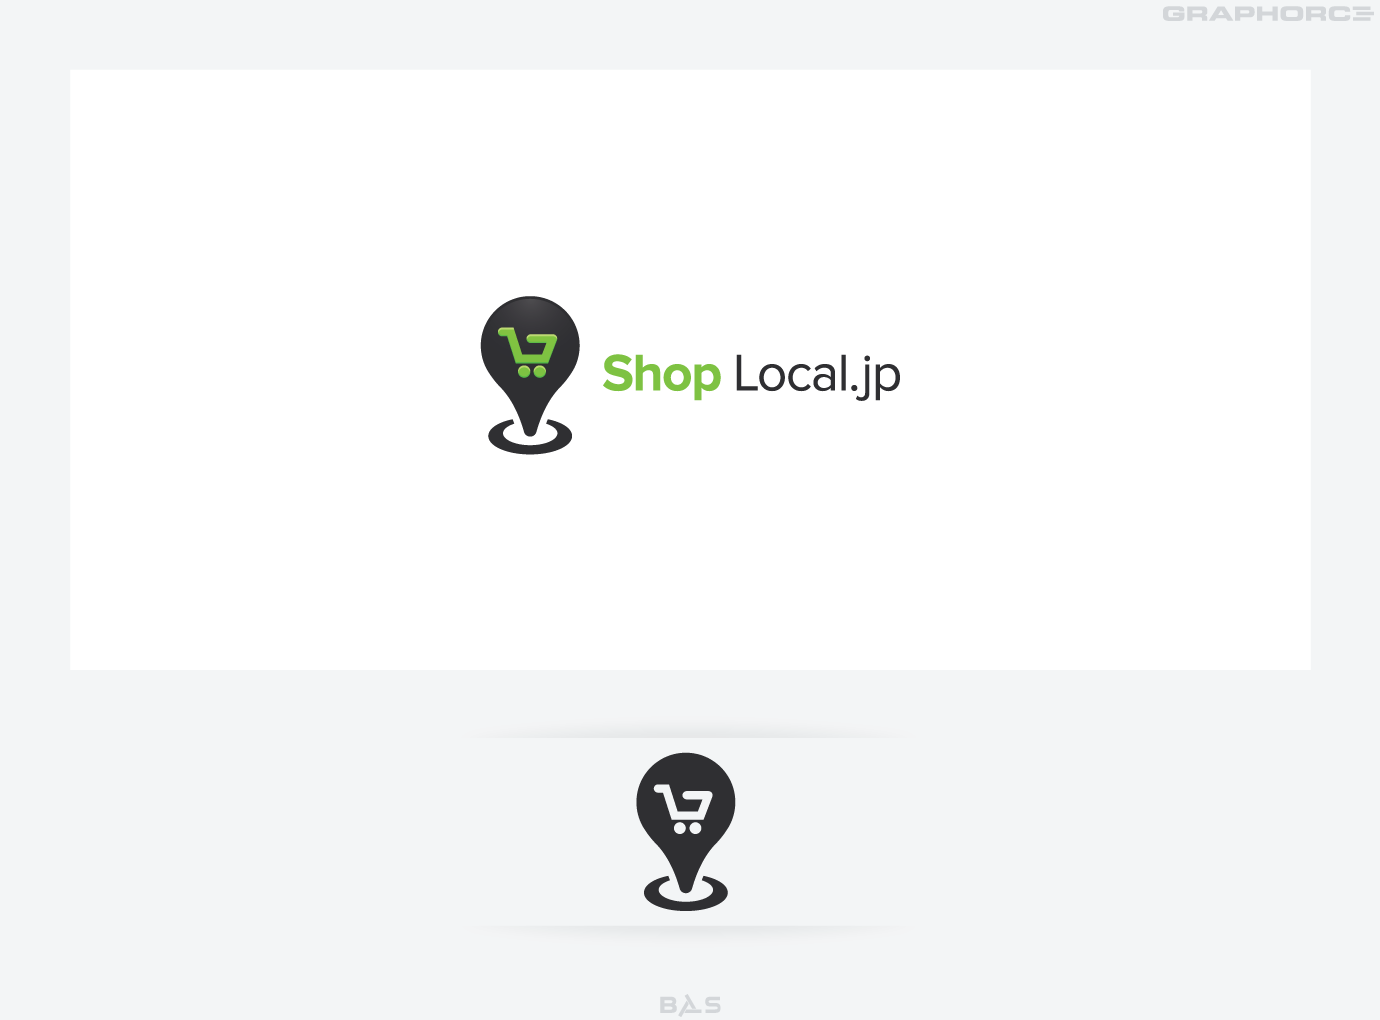 ShopLocal.jp needs a new logo